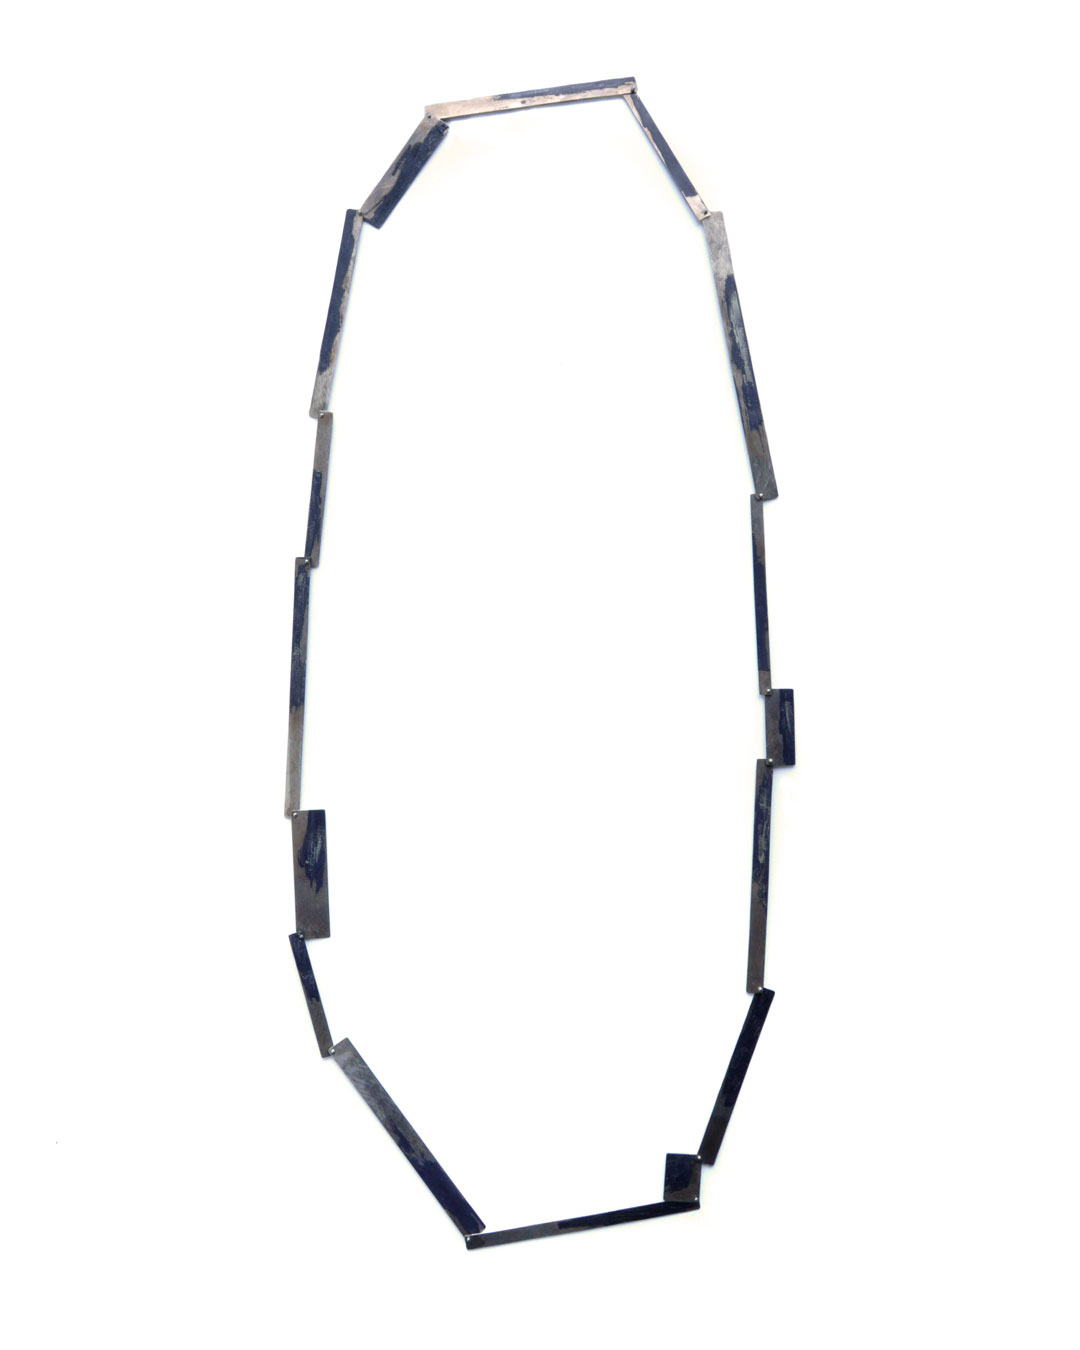 Graziano Visintin, untitled, 2000, necklace; white gold, niello, 420 x 120 mm, price on request